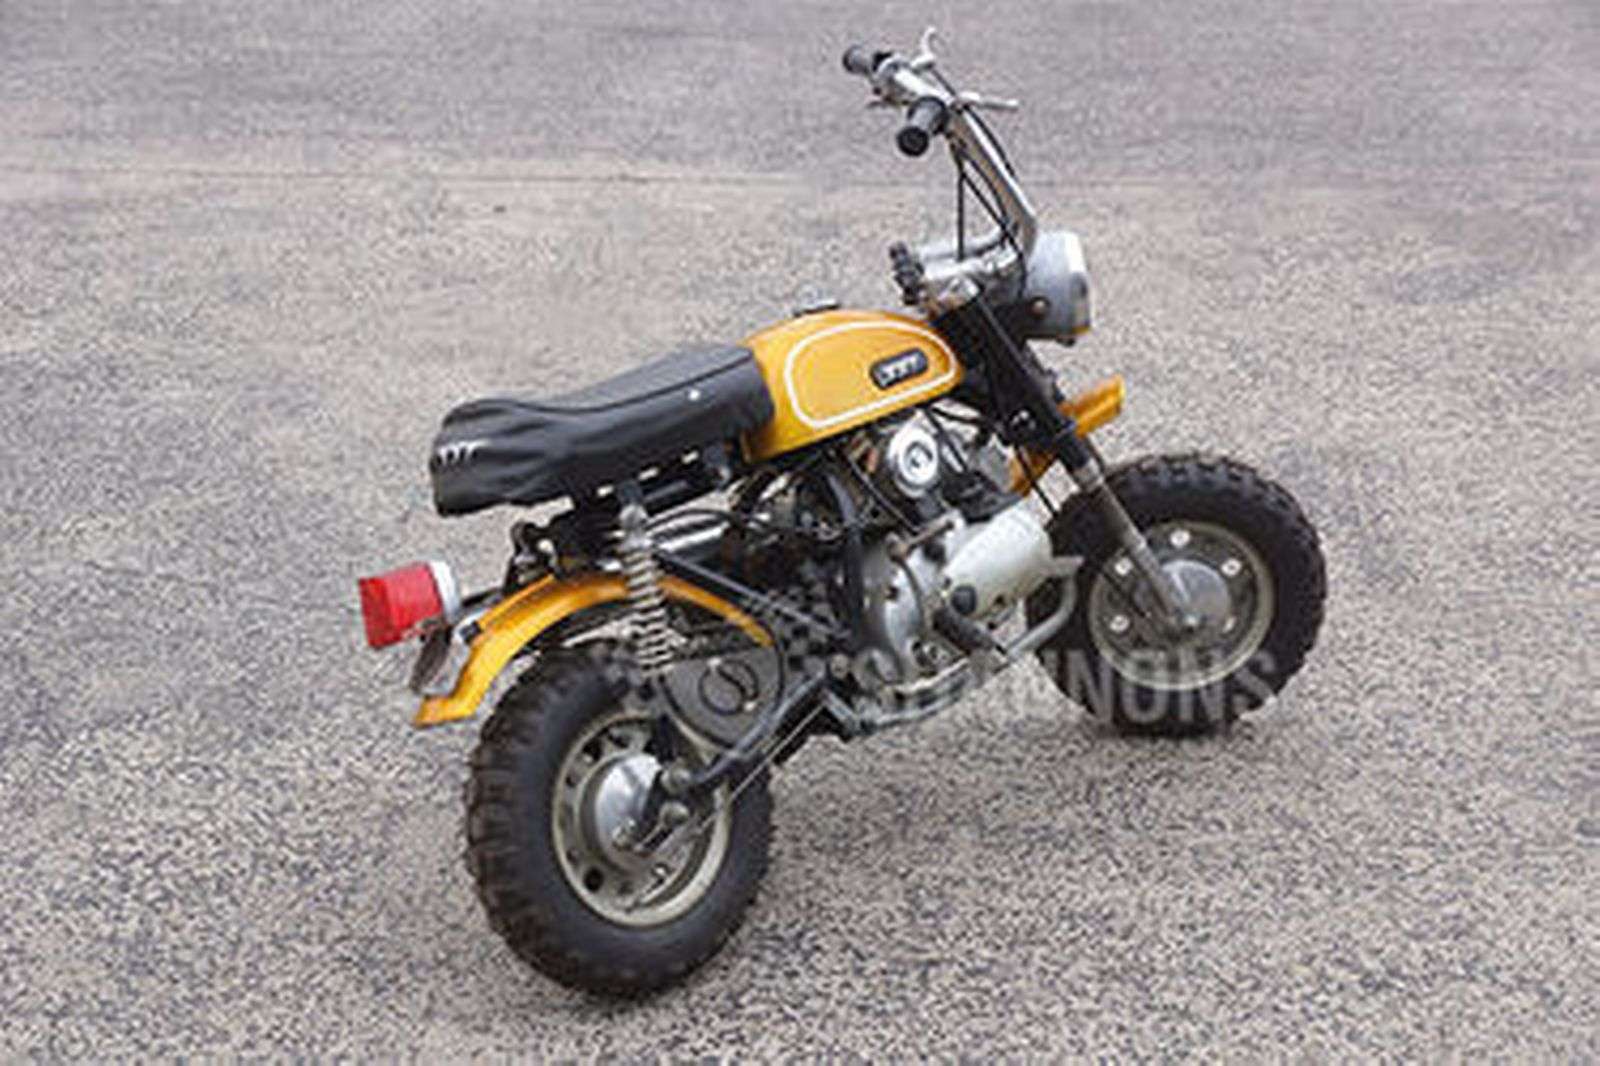 Sold: SST Gemini 50cc Mini Bike Auctions - Lot 13 - Shannons